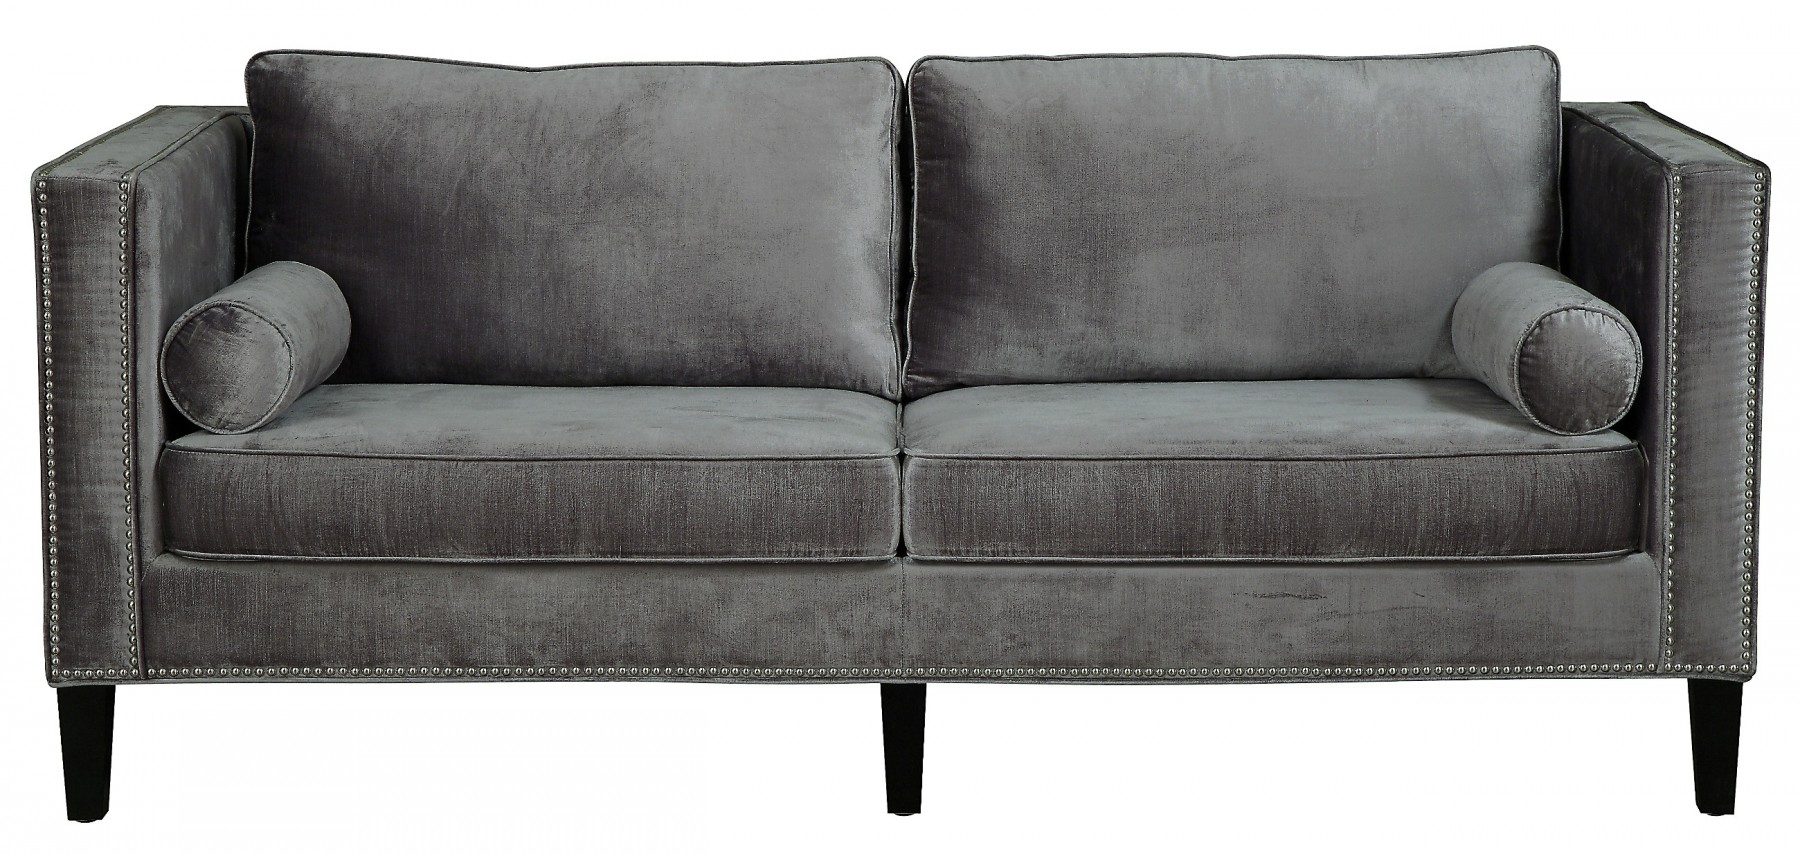 Velvet Sofa cooper velvet sofatov furniture buy online at best price - sohomod